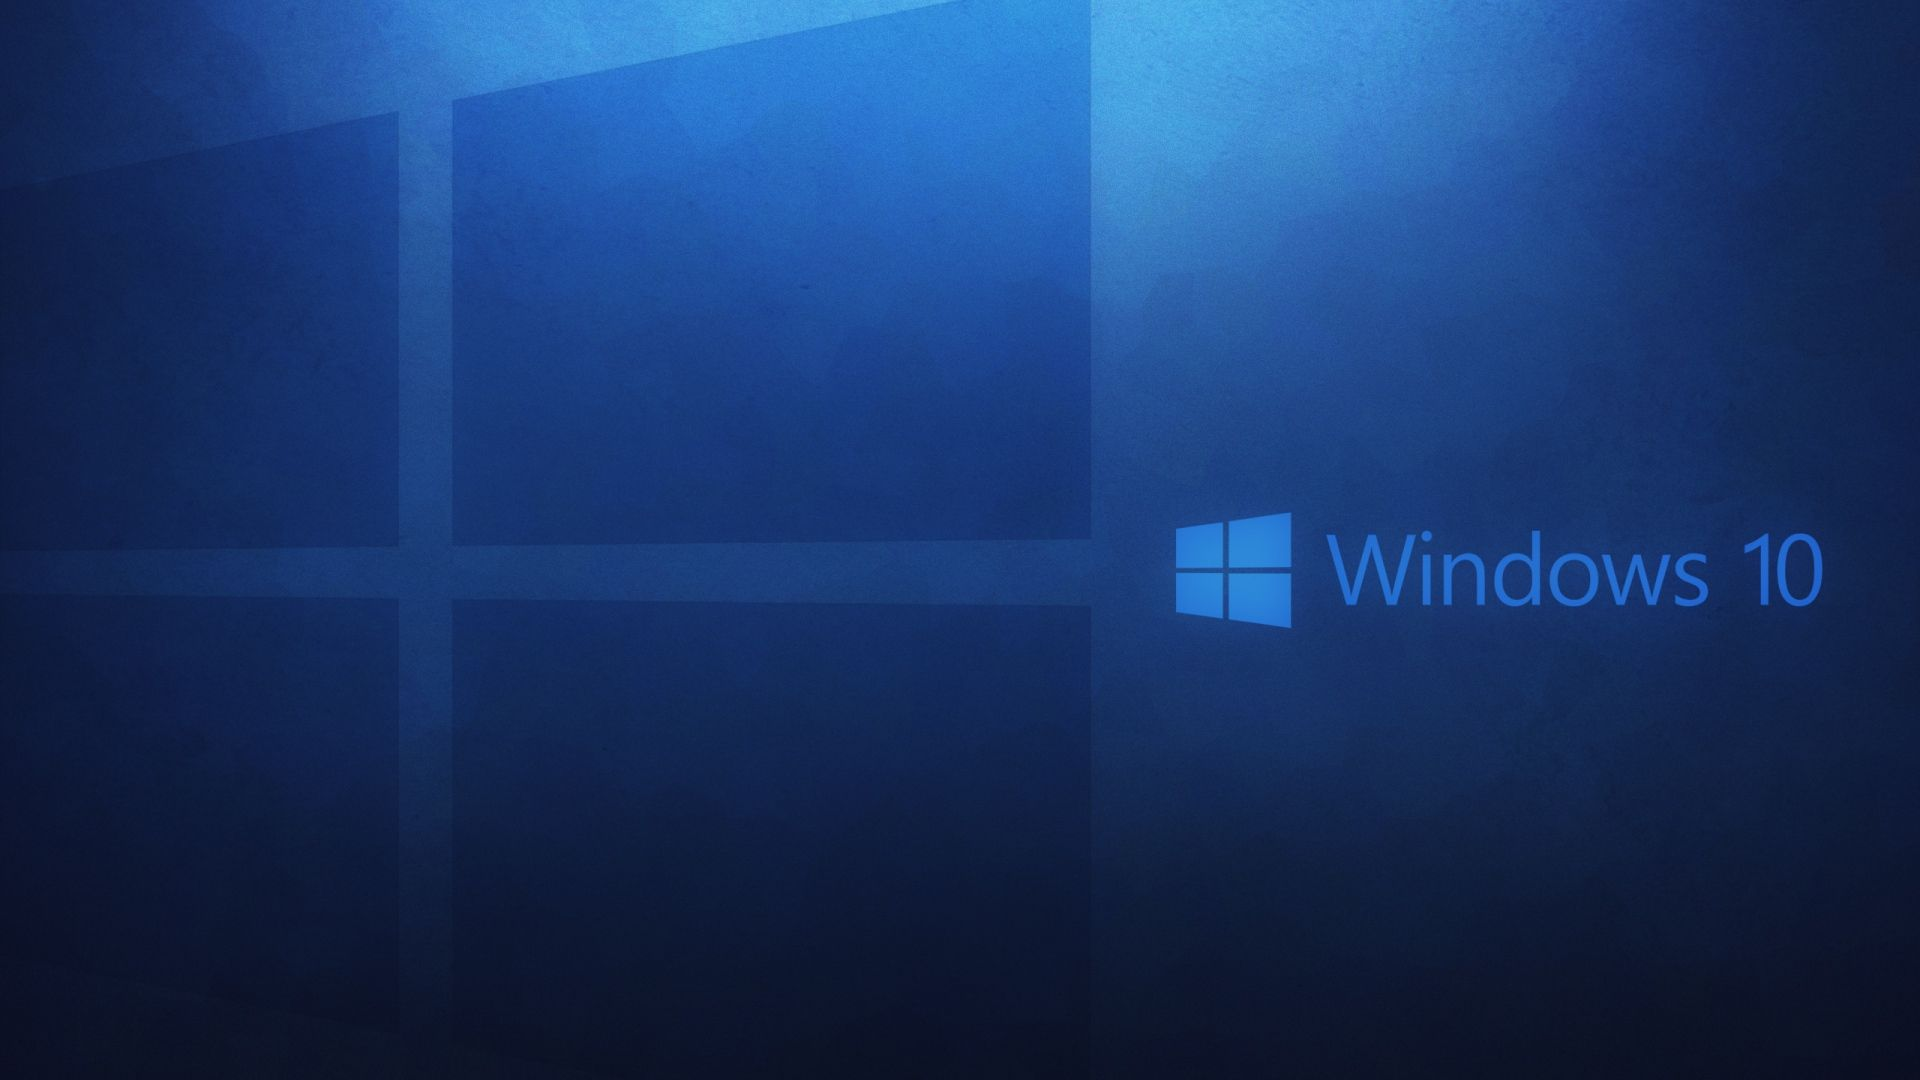 How To Enable Or Disable Hibernate Mode In Windows 10 Https Www Technobezz Com How To Enable Or Disable Wallpaper Windows 10 Windows 10 Microsoft Windows 10